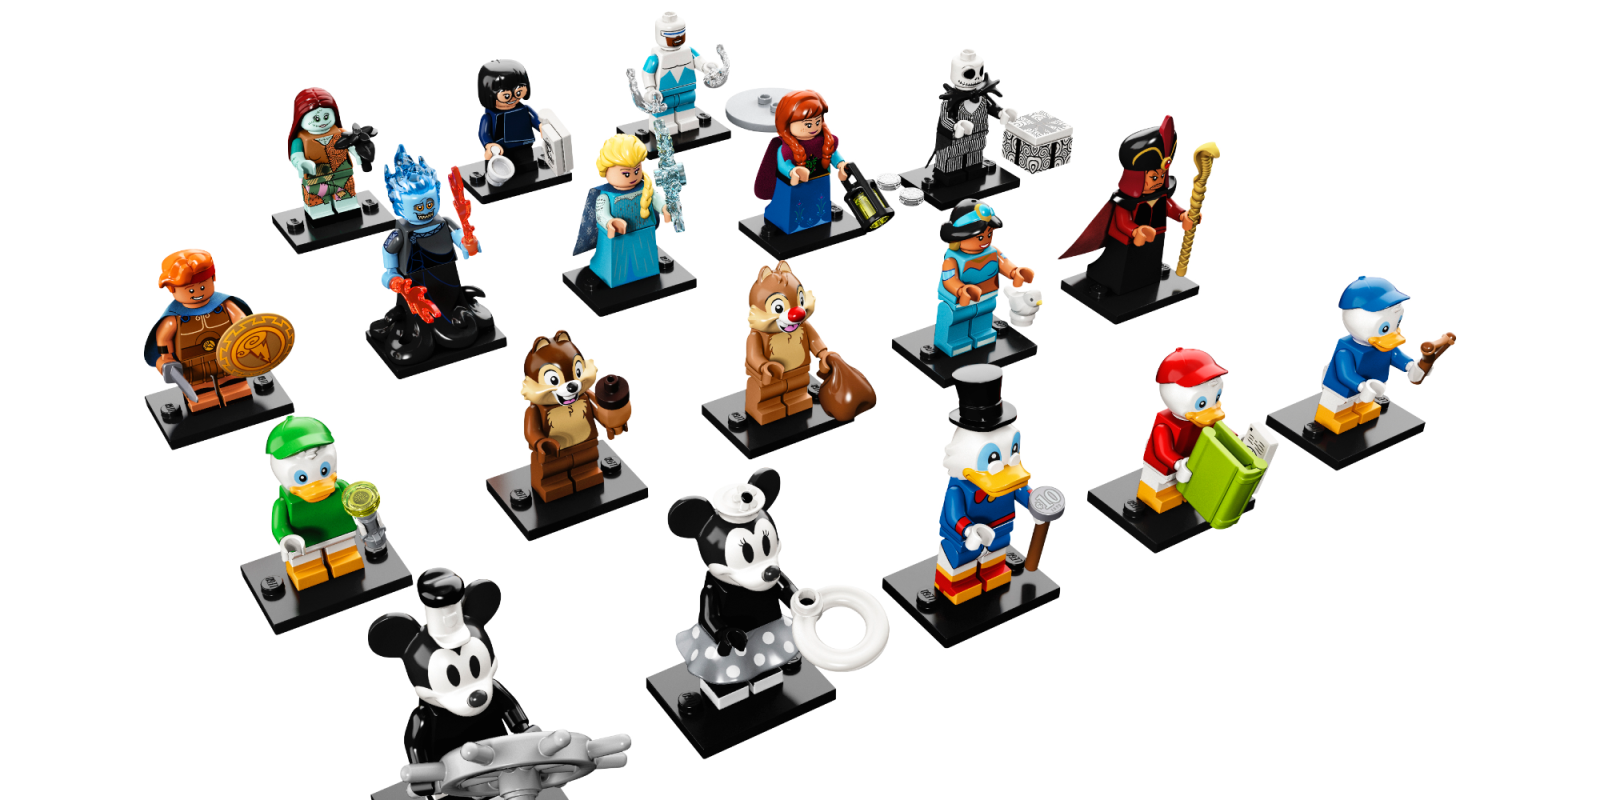 LEGO unveils latest Collectible Minifigure Series with 18 new fan-favorite Disney characters